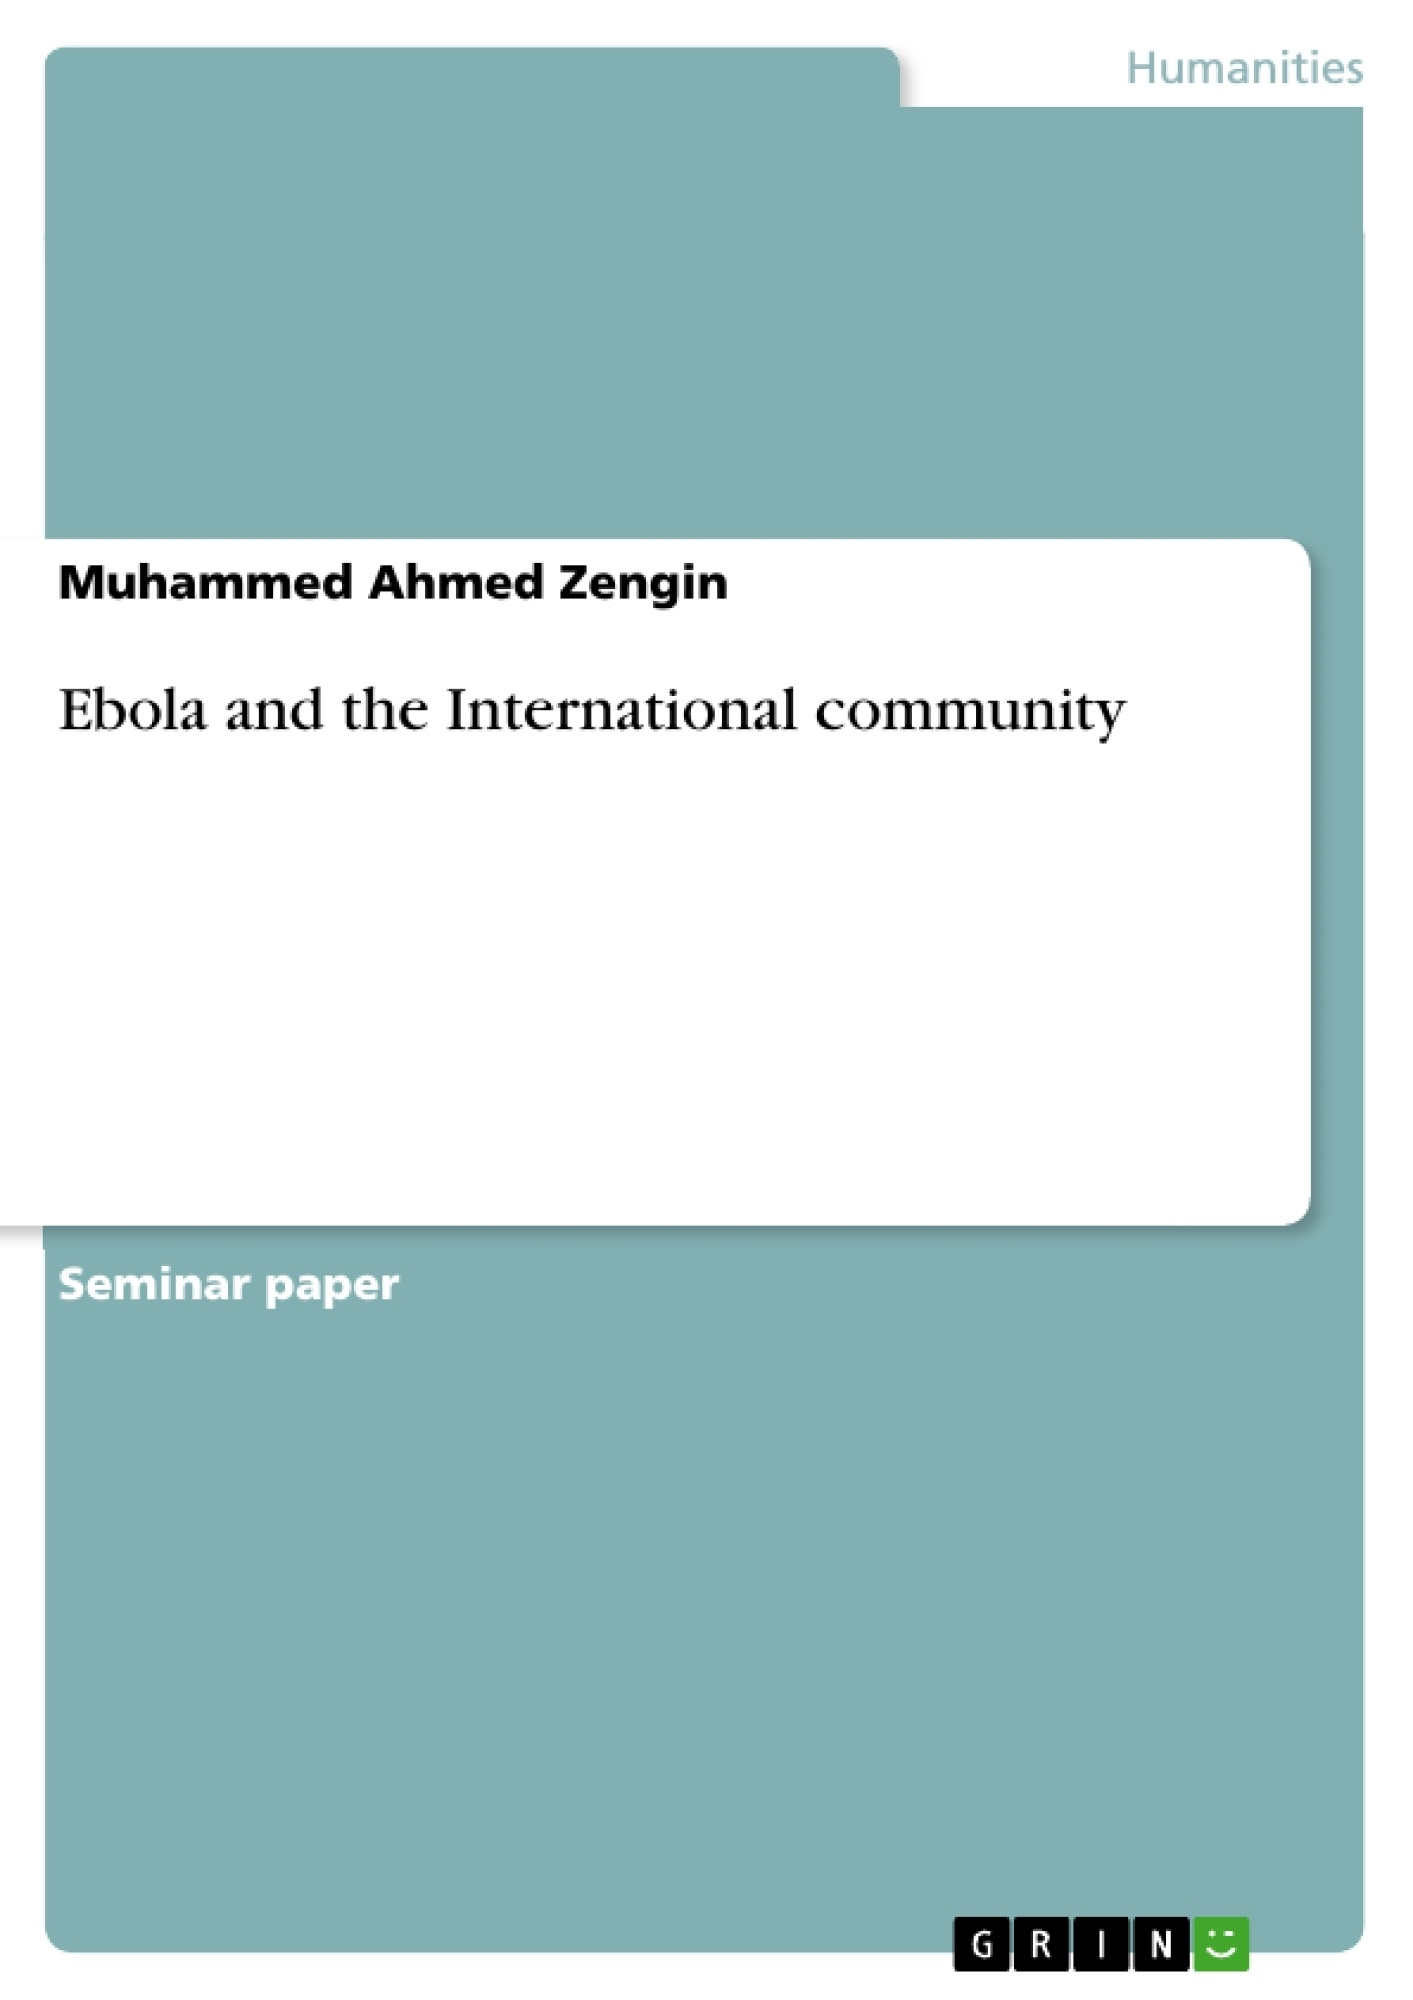 Title: Ebola and the International community